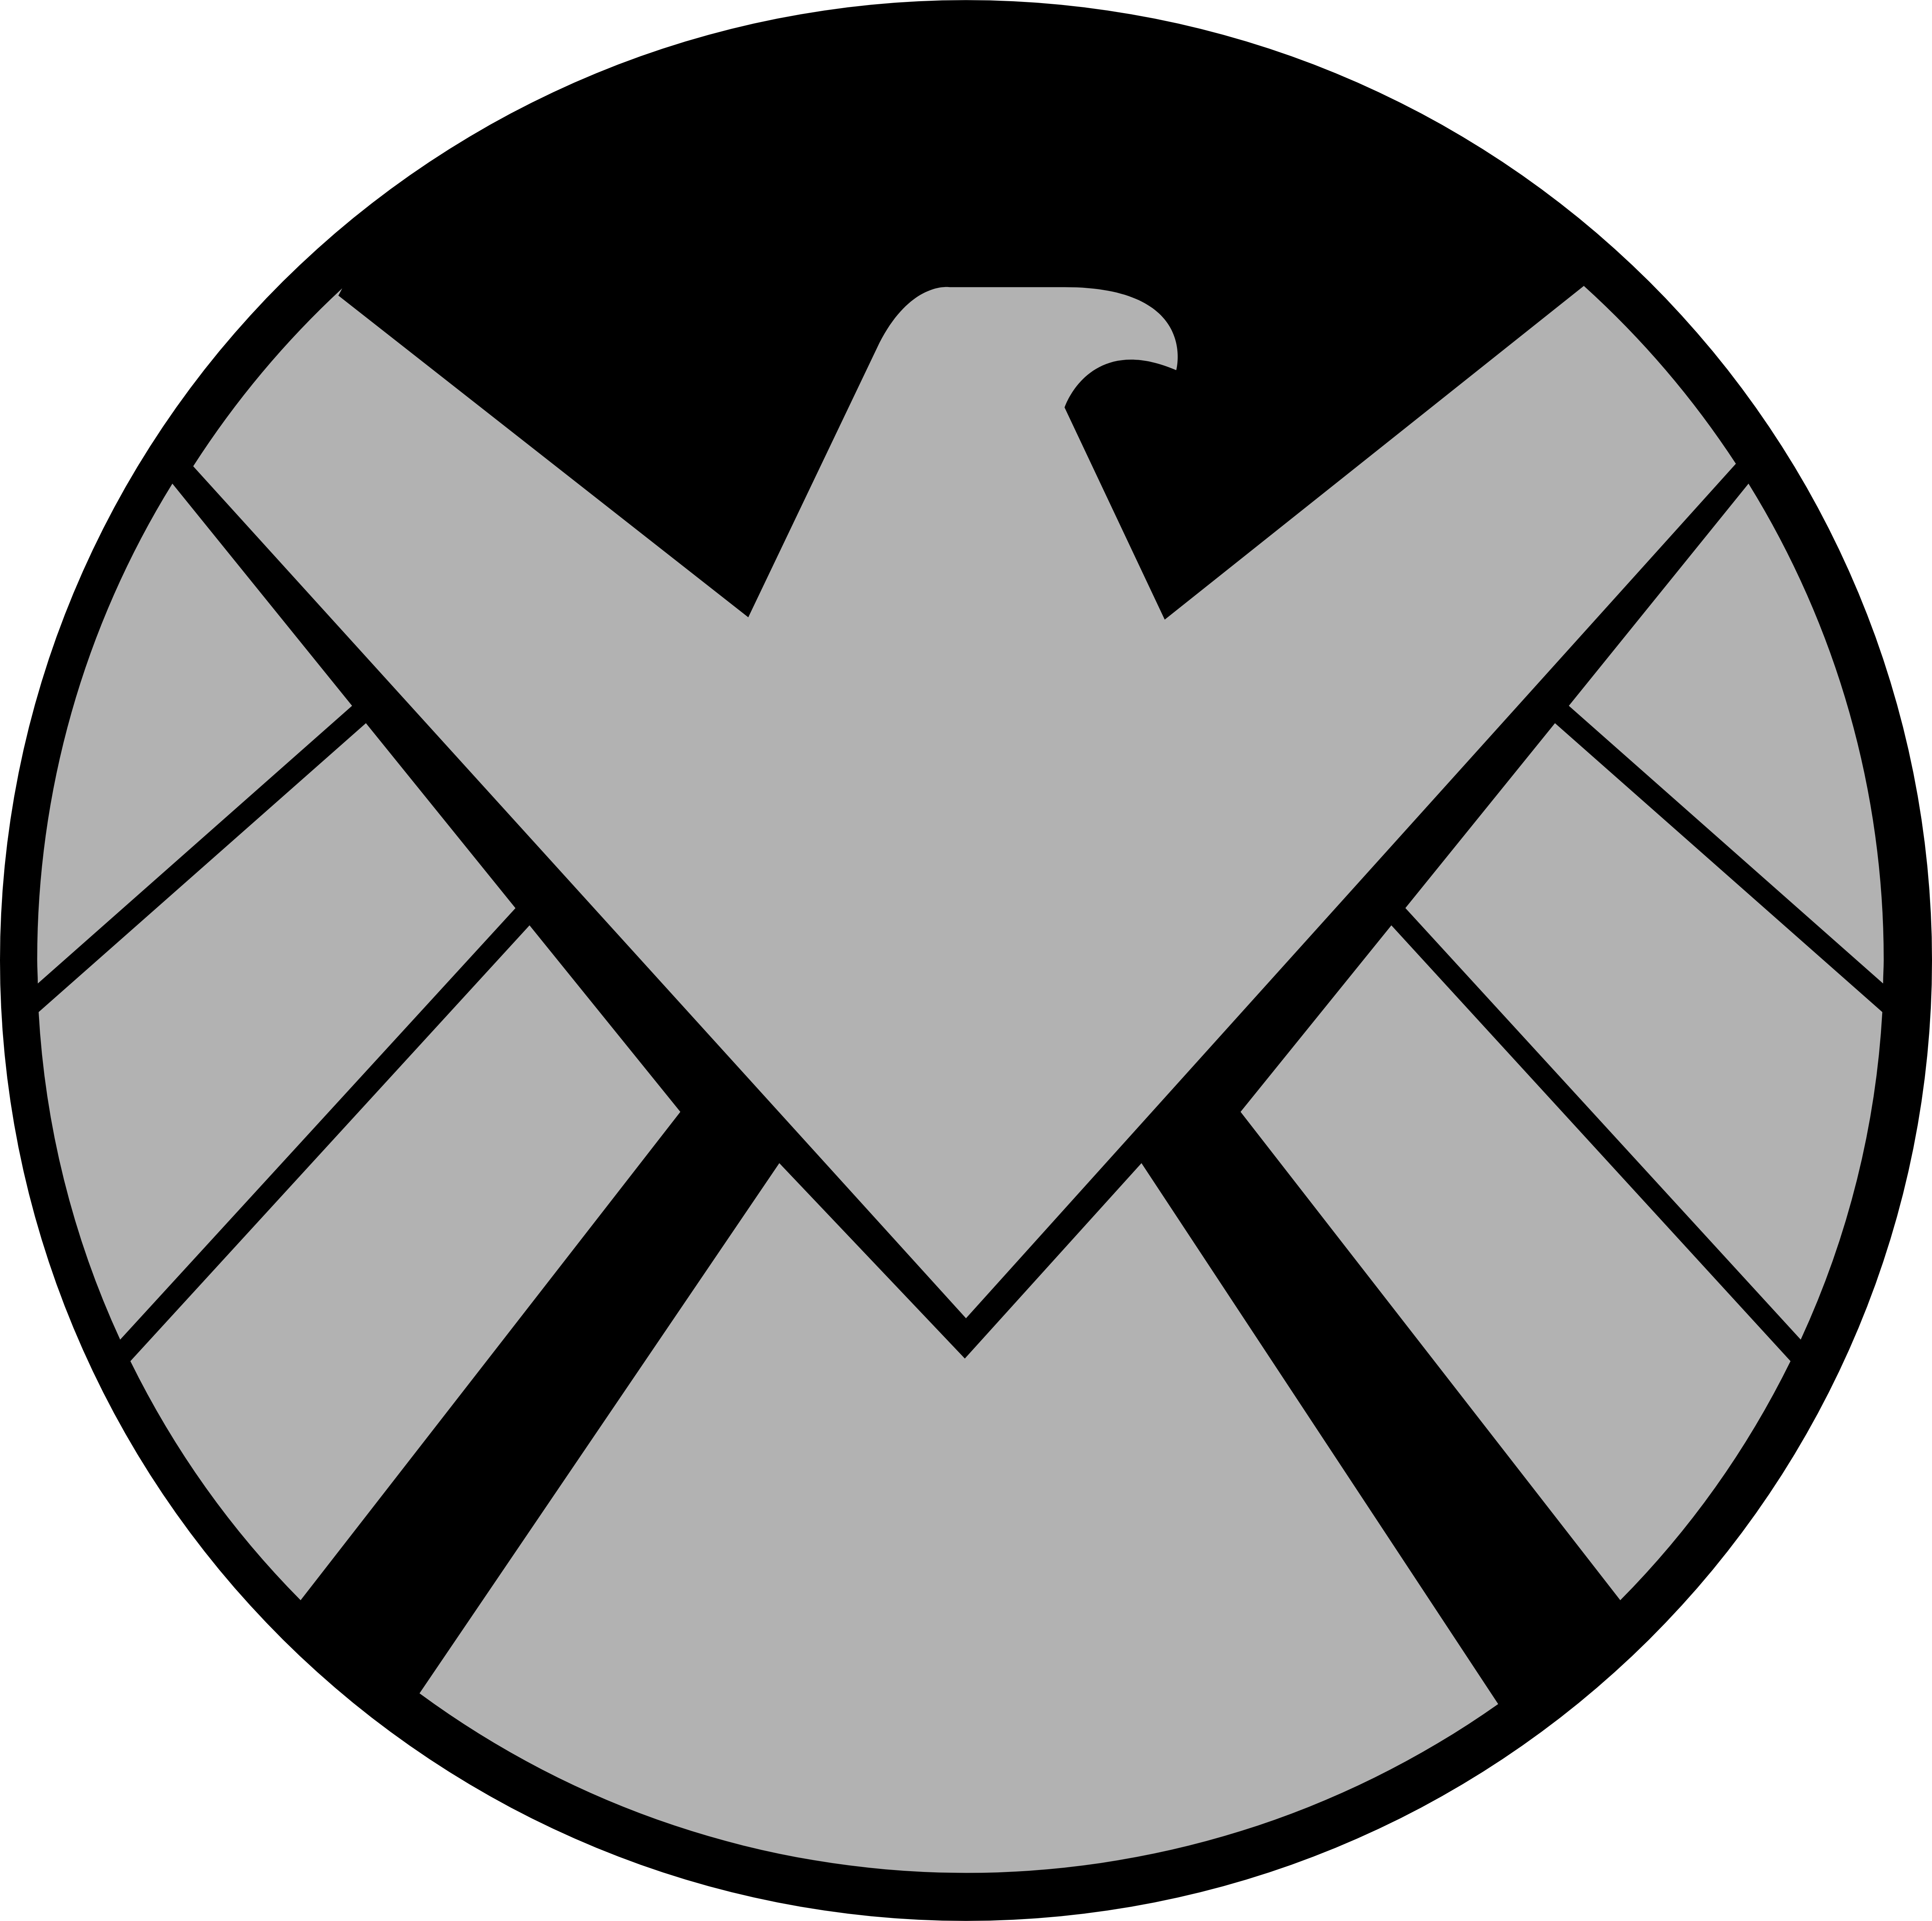 Marvels Agents of Shield - Logos Download